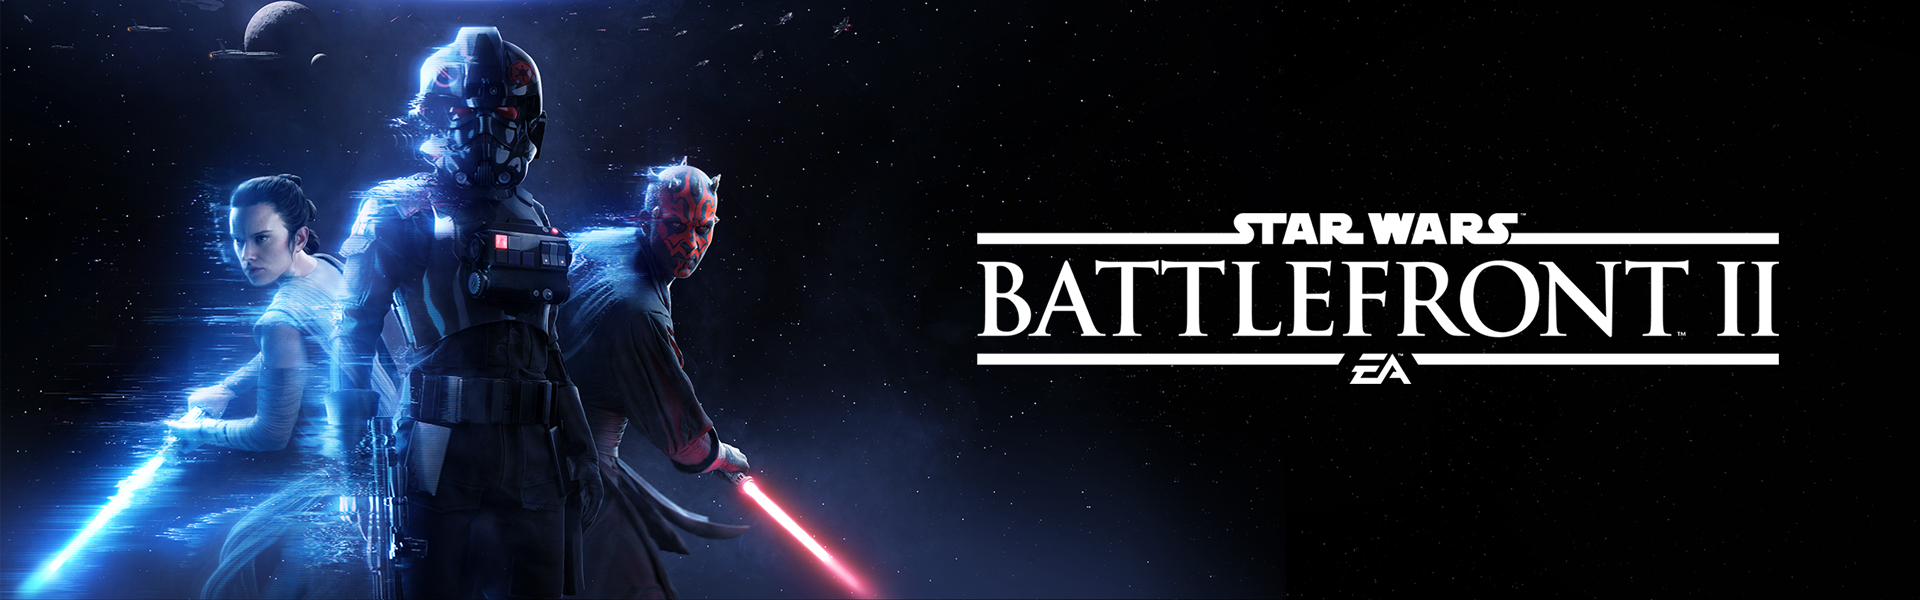 Star Wars Battlefront II, Front view of Iden Versio, Rey, and Darth Maul with a starry background.